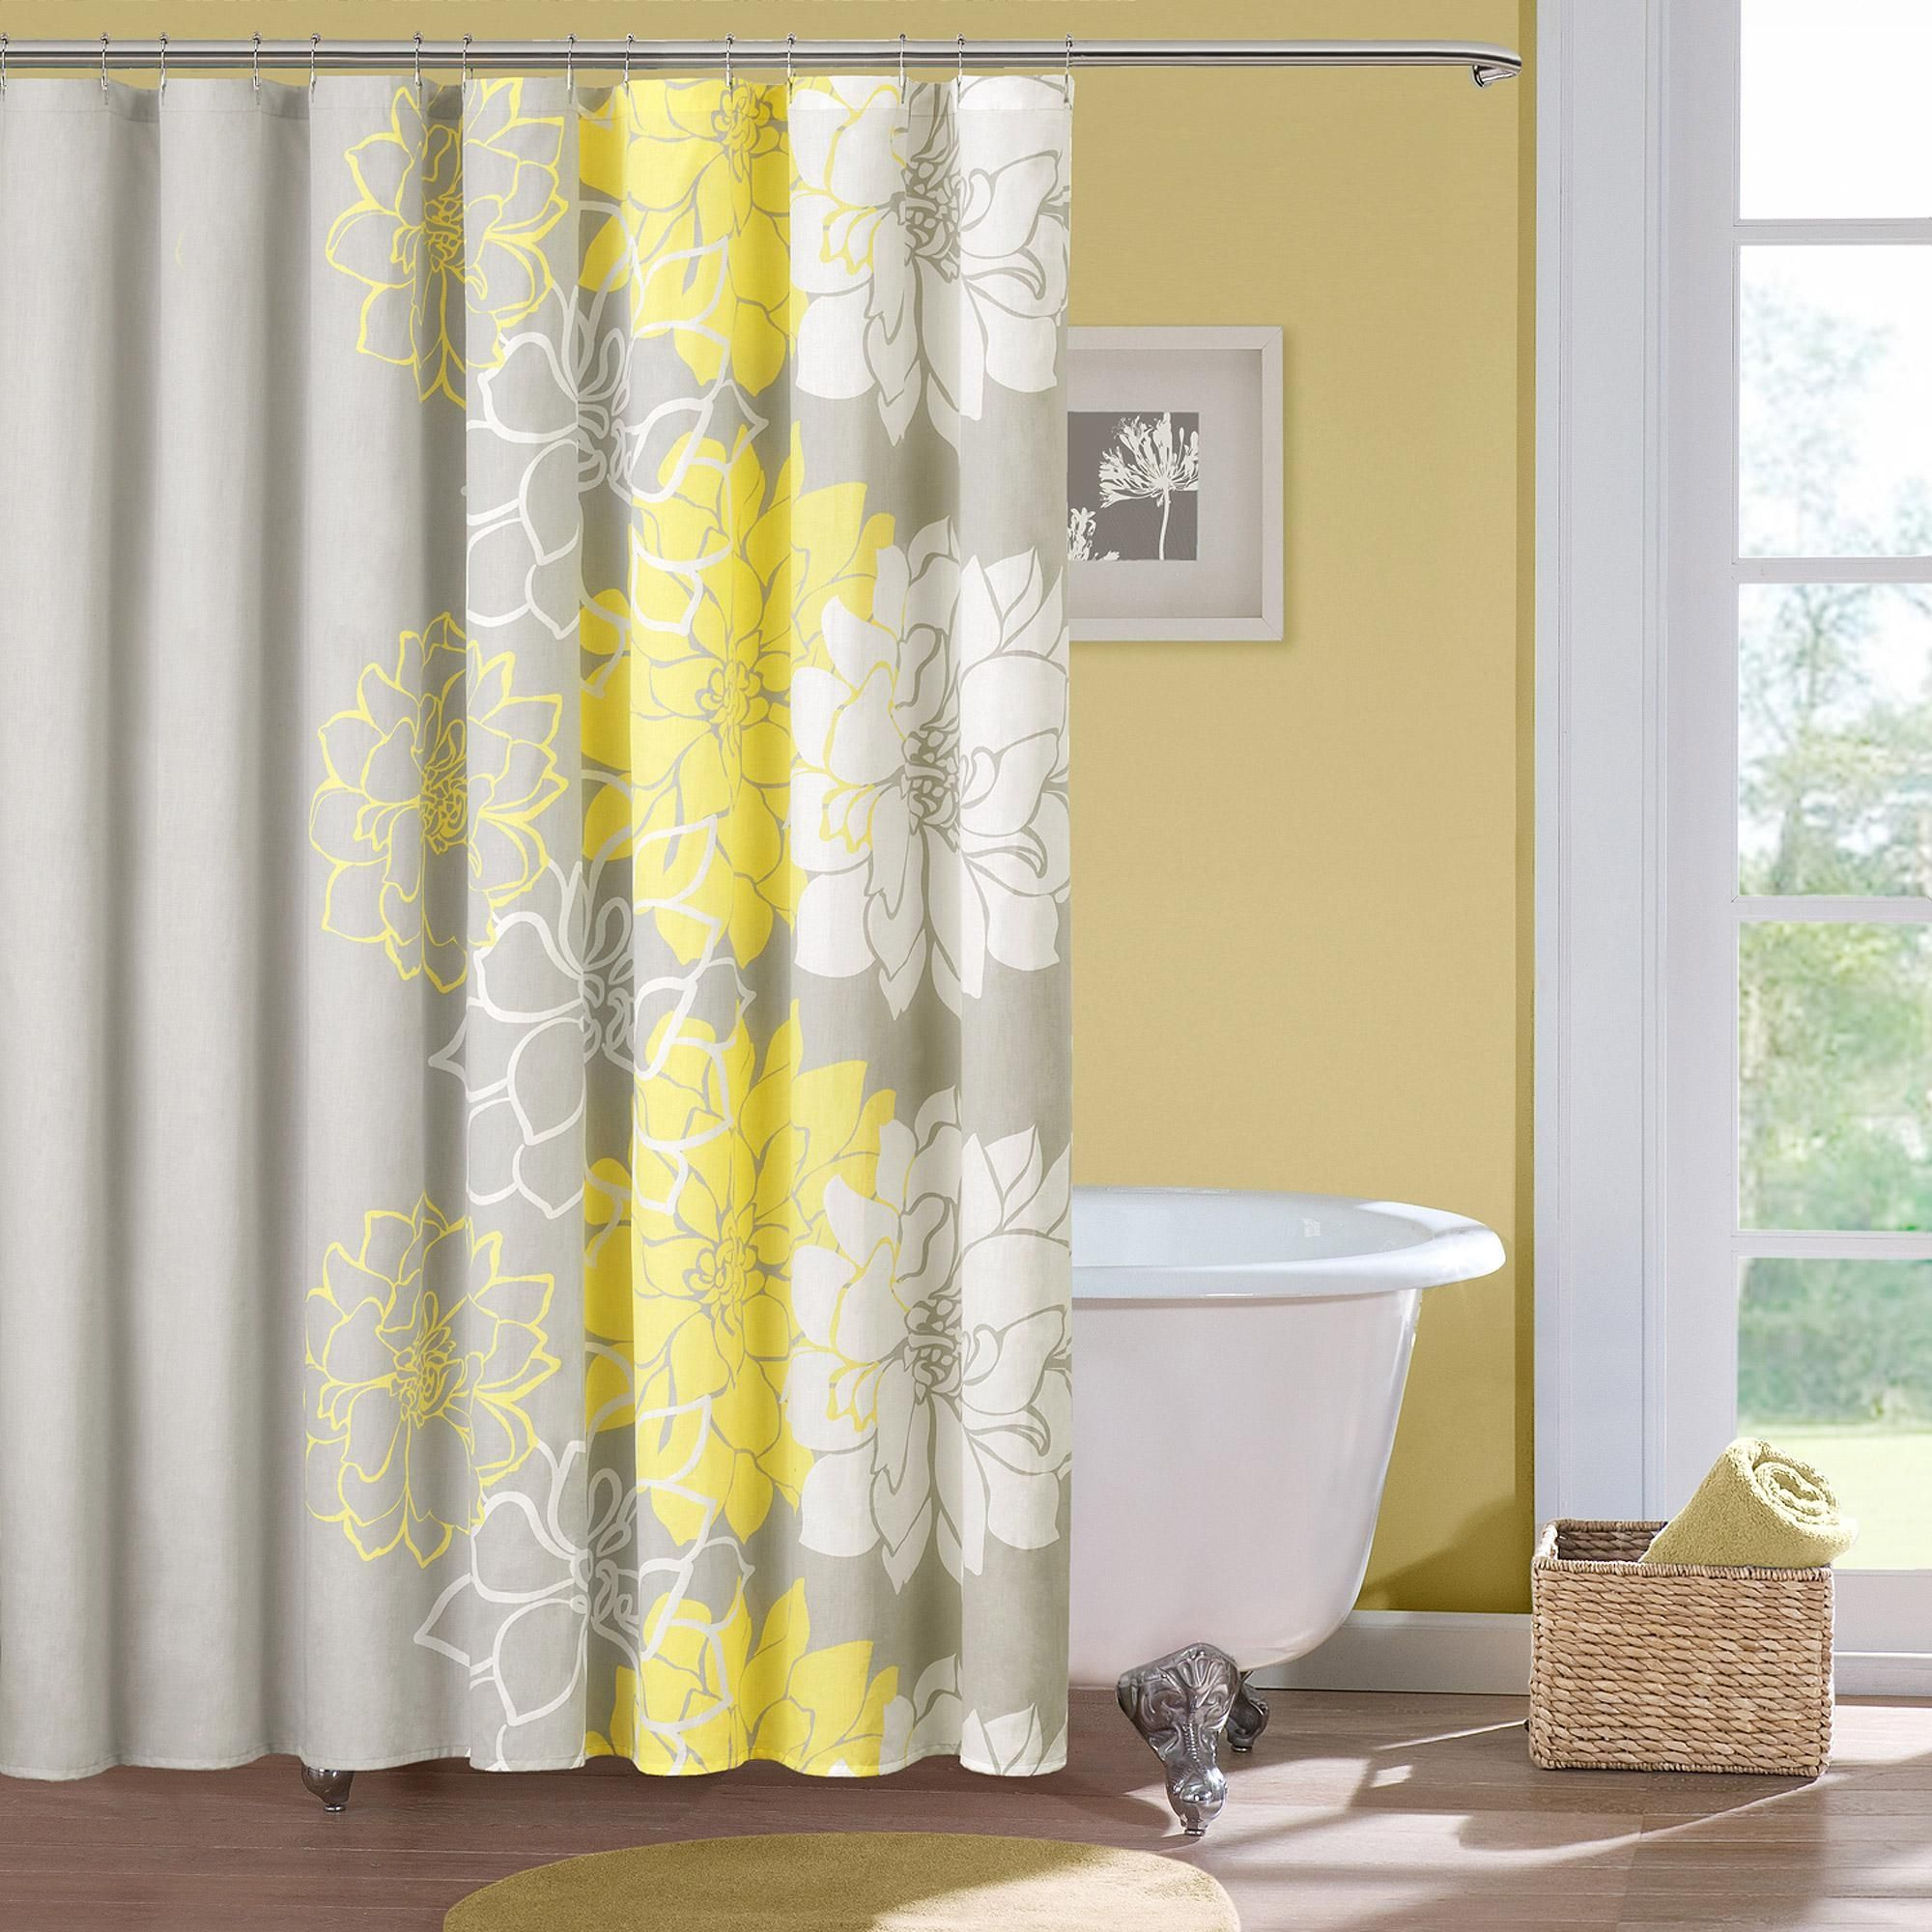 Navy Blue And Yellow Floral Shower Curtain